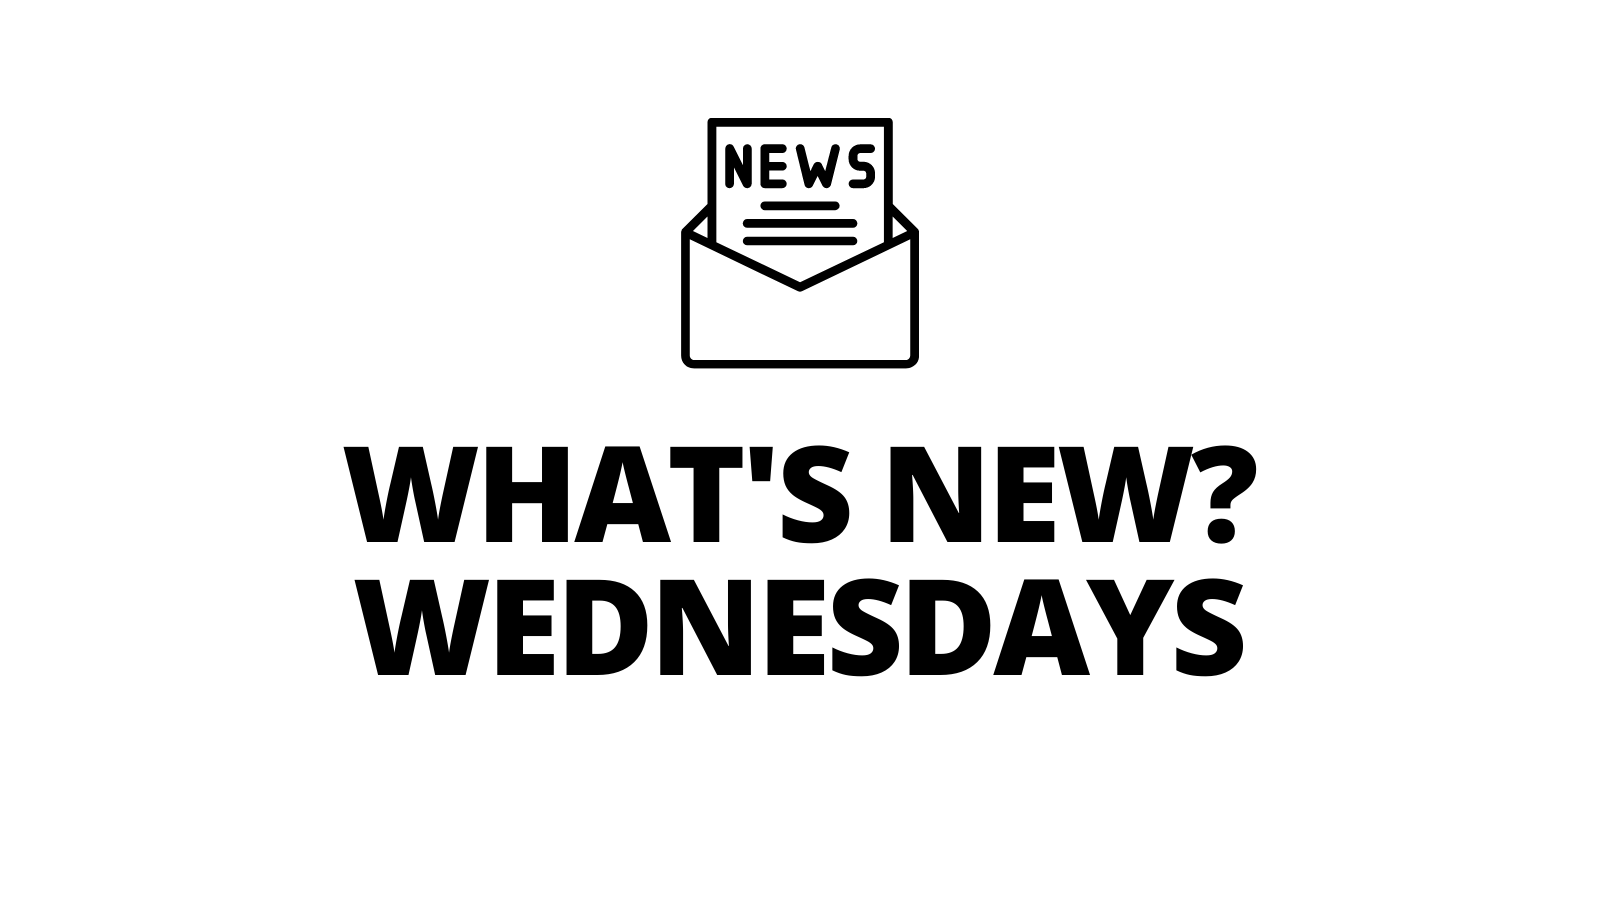 WHAT'S NEW? WEDNESDAYS